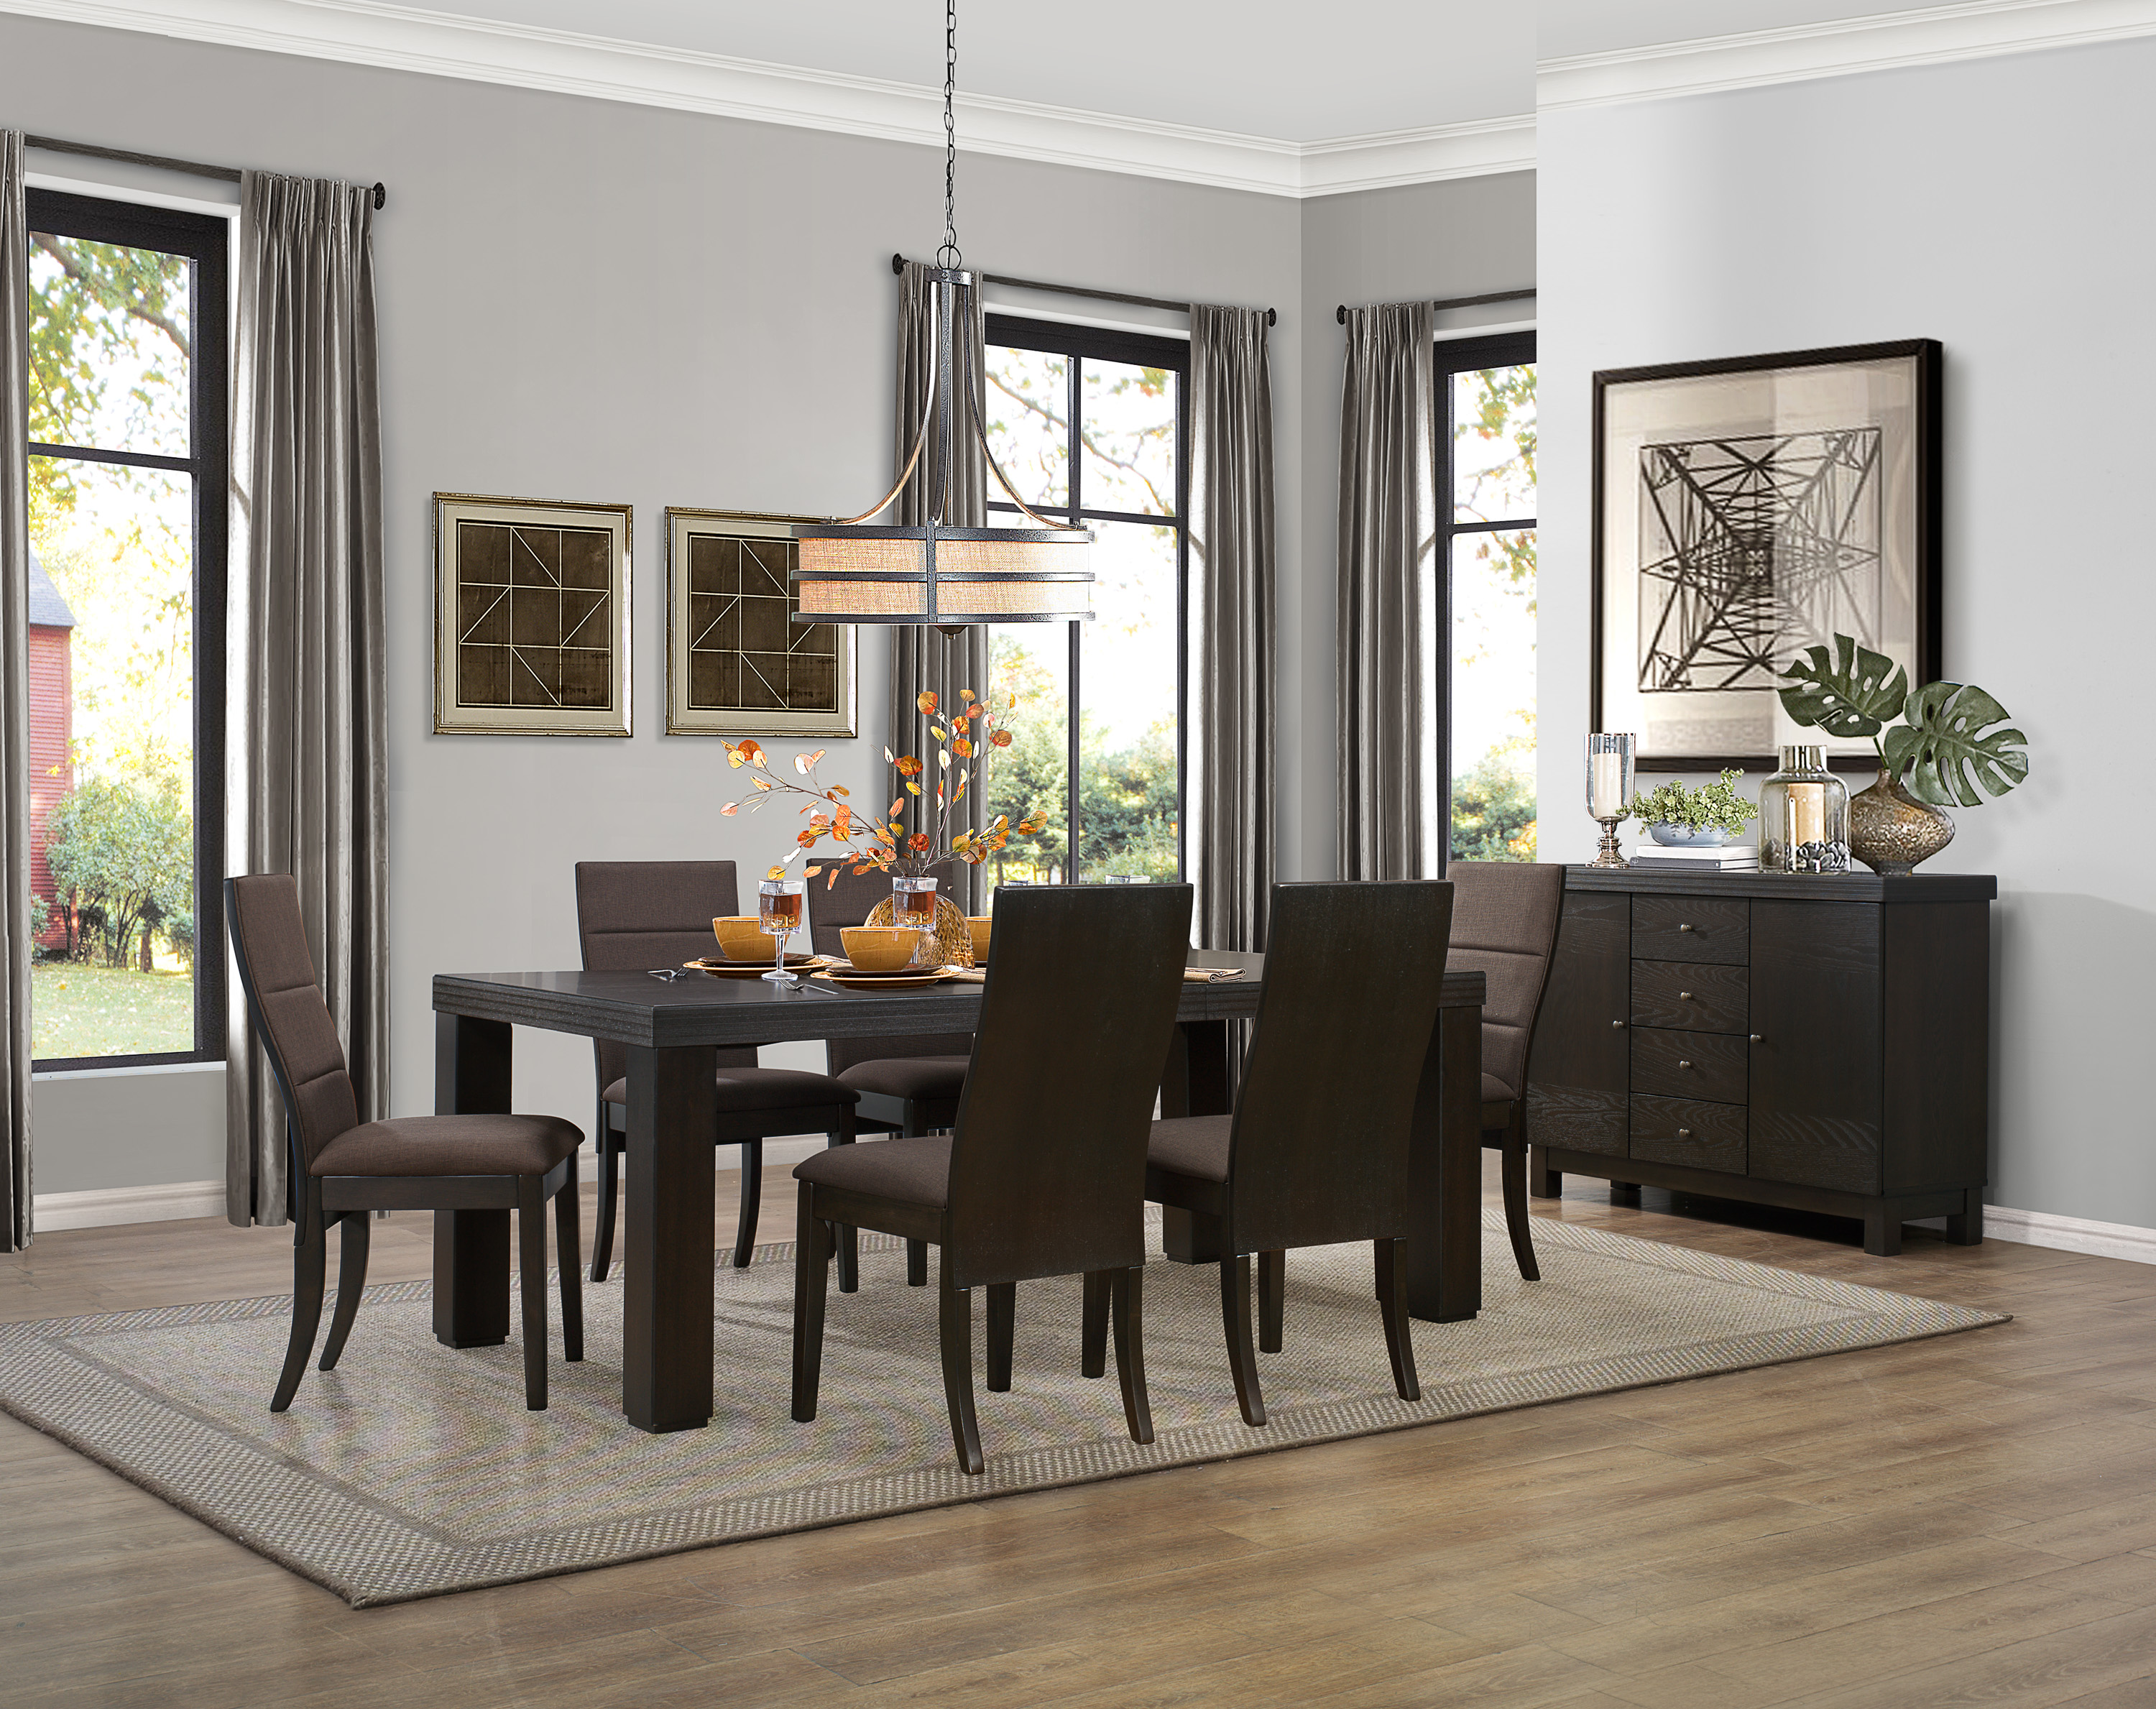 virtuemart_product_he-5092-pinole-wood-dining-table-